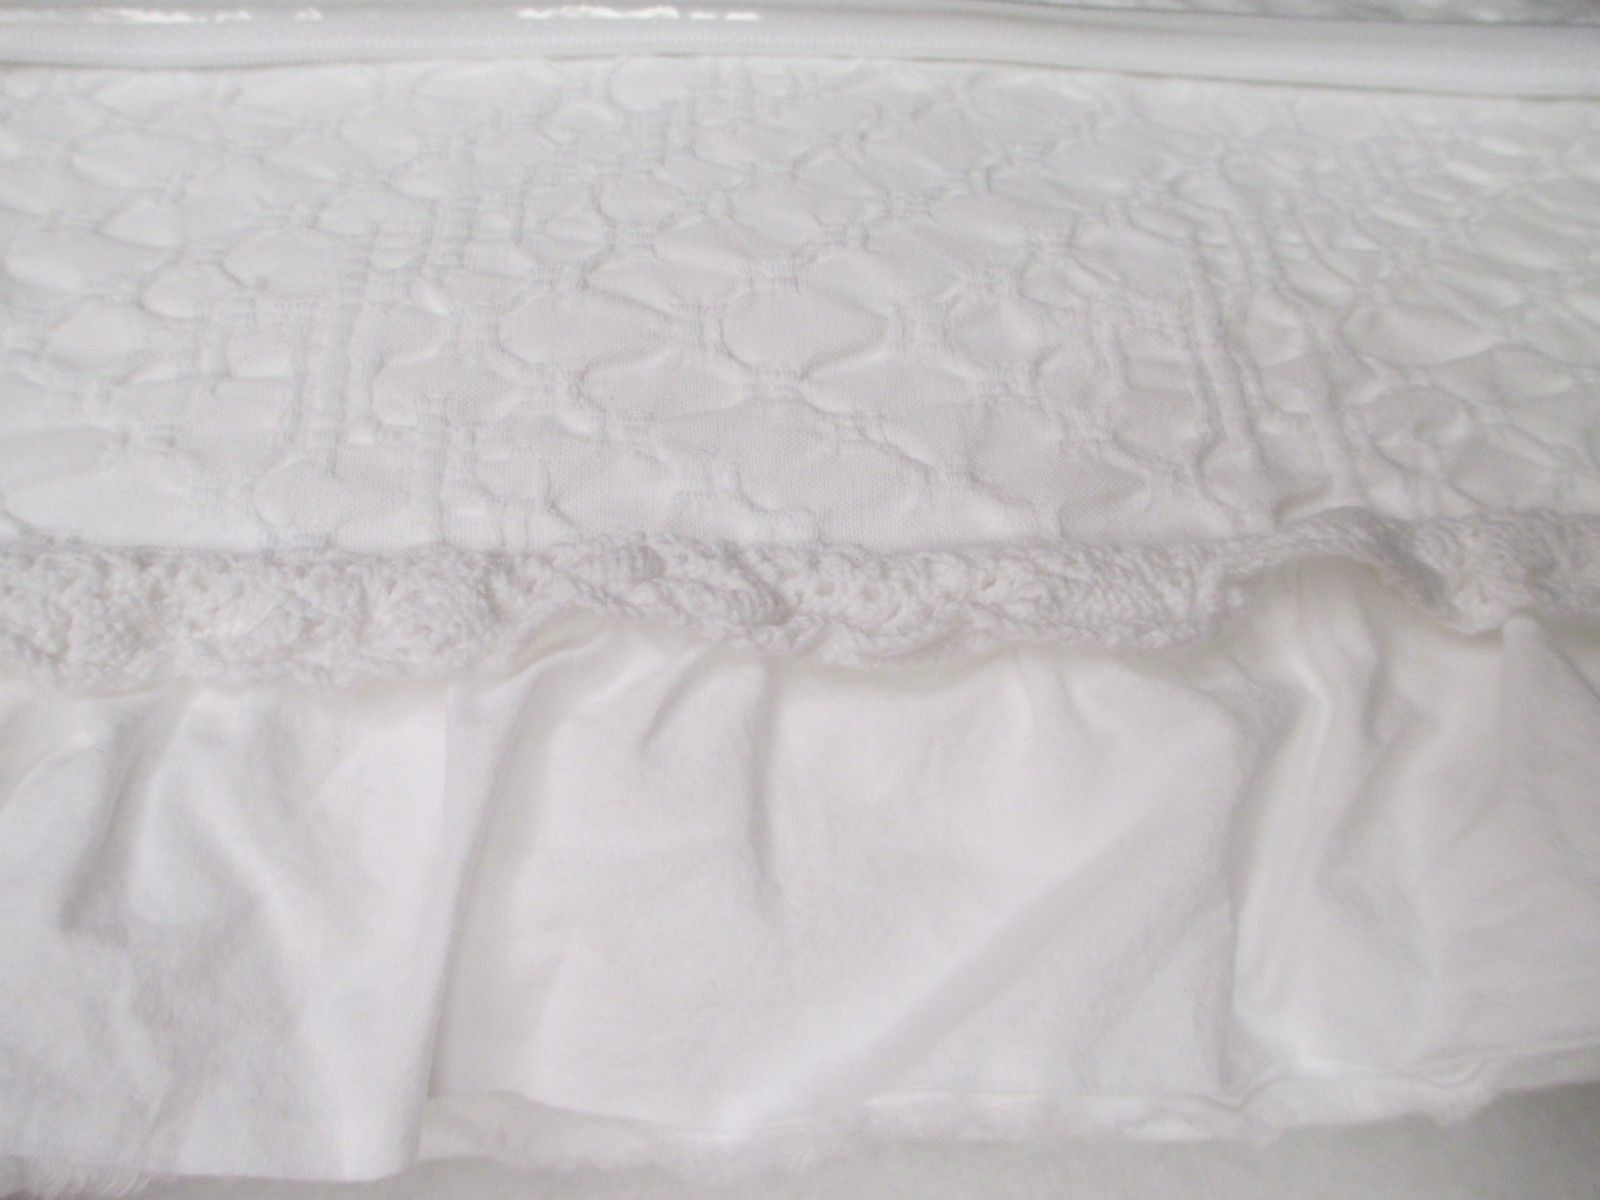 INUP Home Portugal Cotton Crochet Lace Ruffle Weiß Matelasse Coverlet - Queen